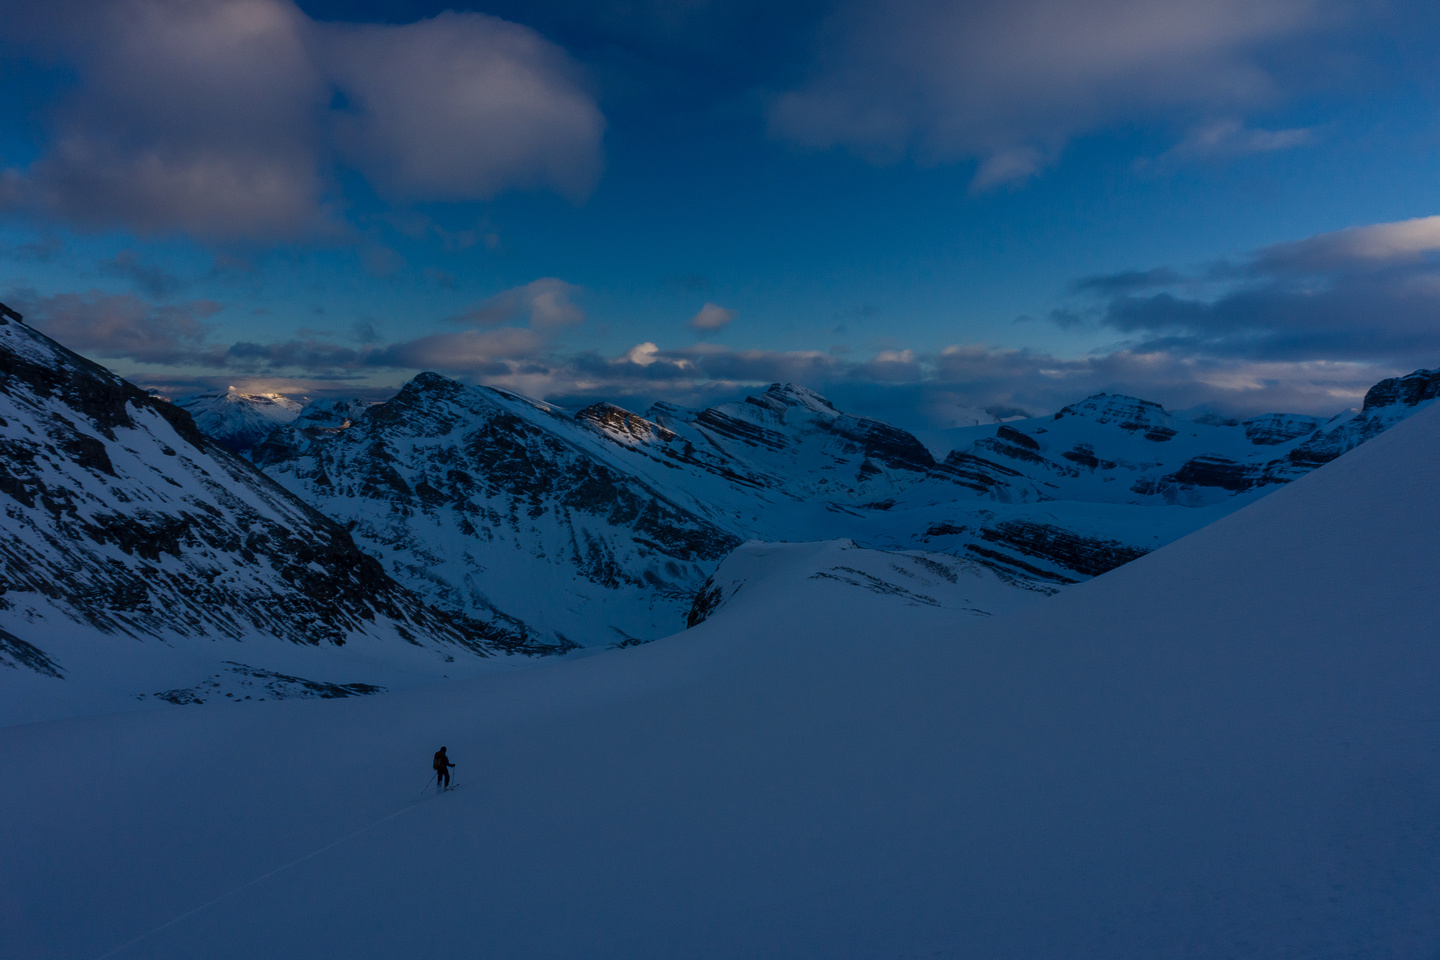 The snow was crusty which made it hard to ski, especially in the late afternoon, flat lighting conditions we had.